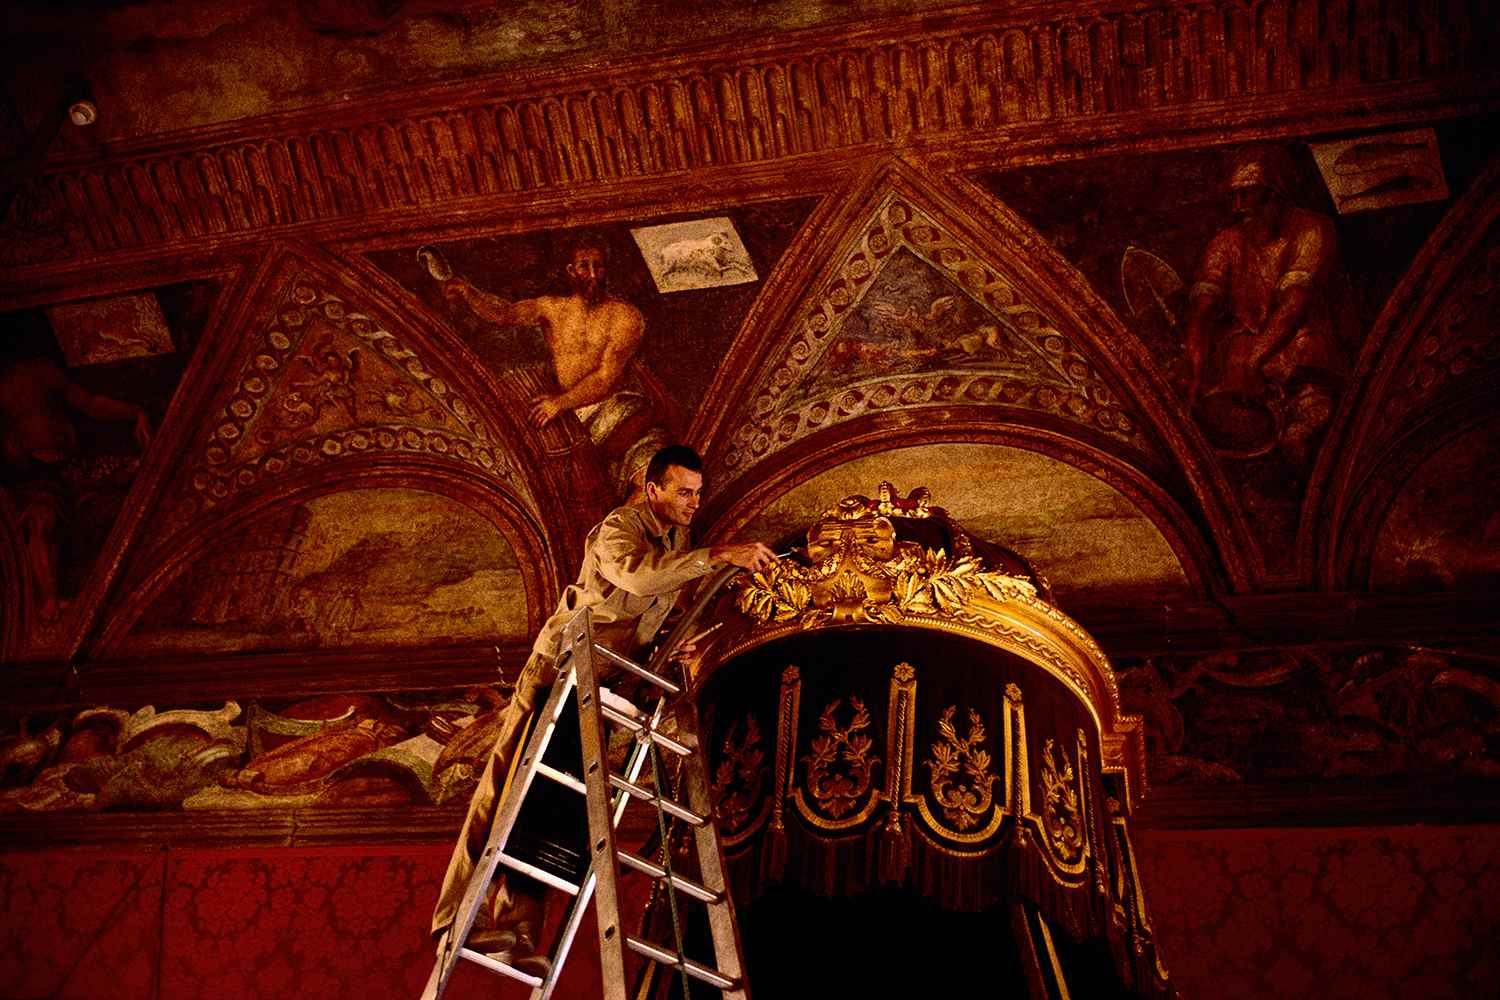 Worker Cleaning the Throne in the Palais du Prince.